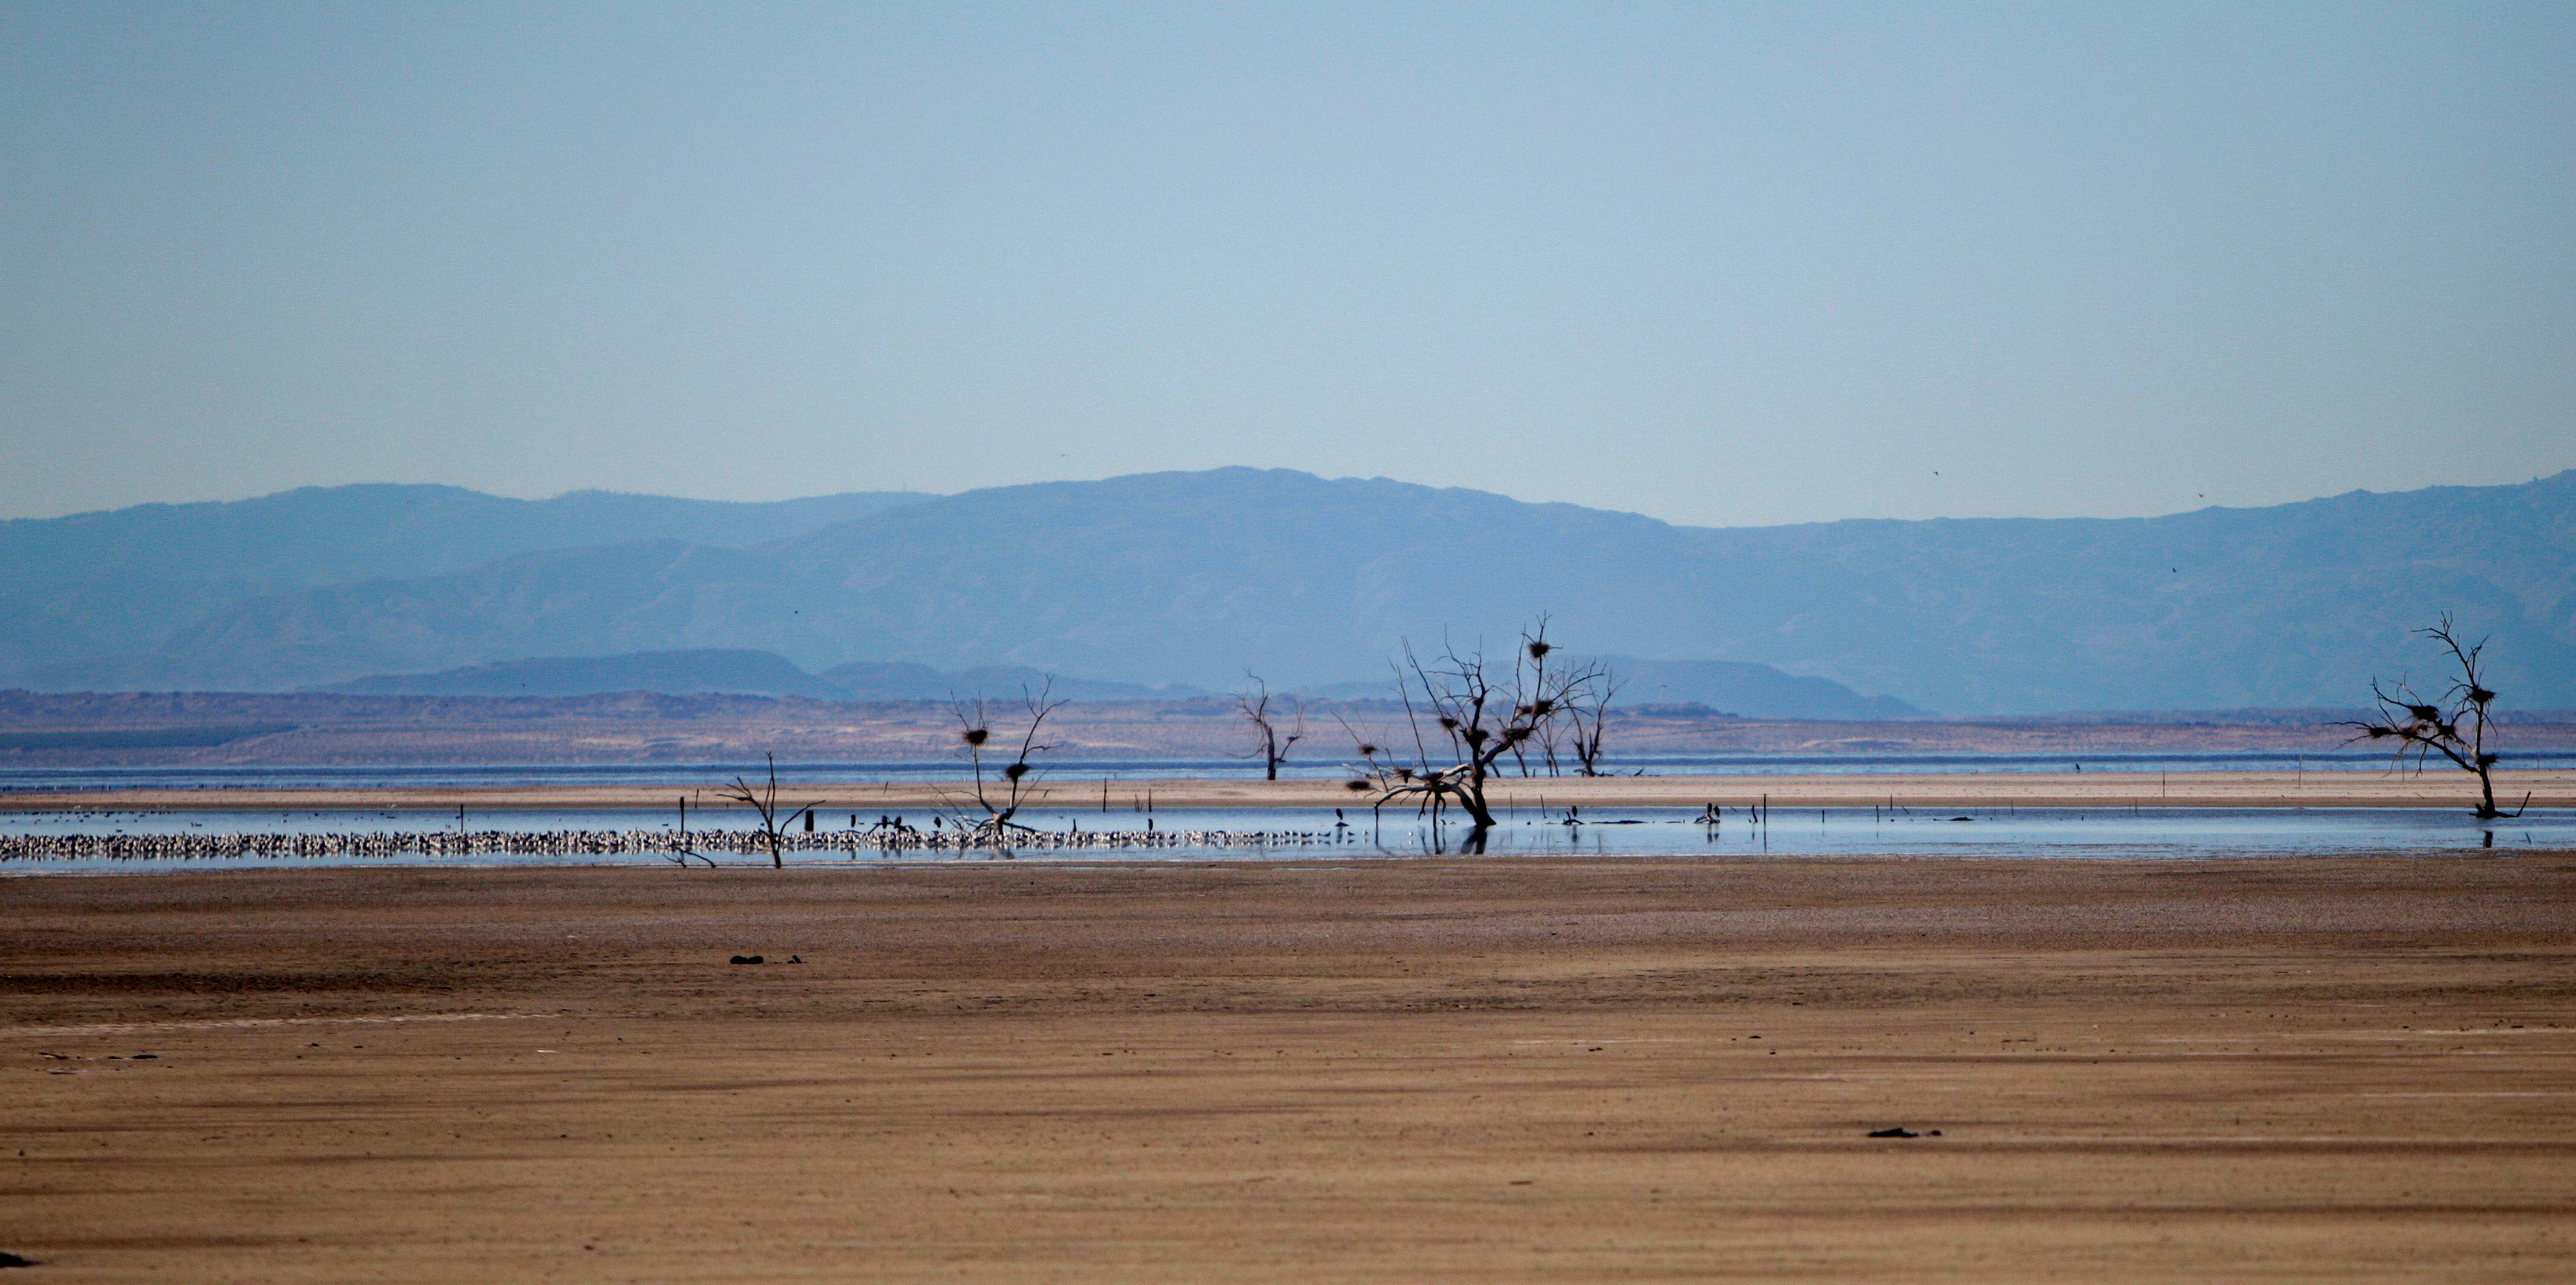 California's Drought Is Making Its Dying Inland Sea Even More Toxic